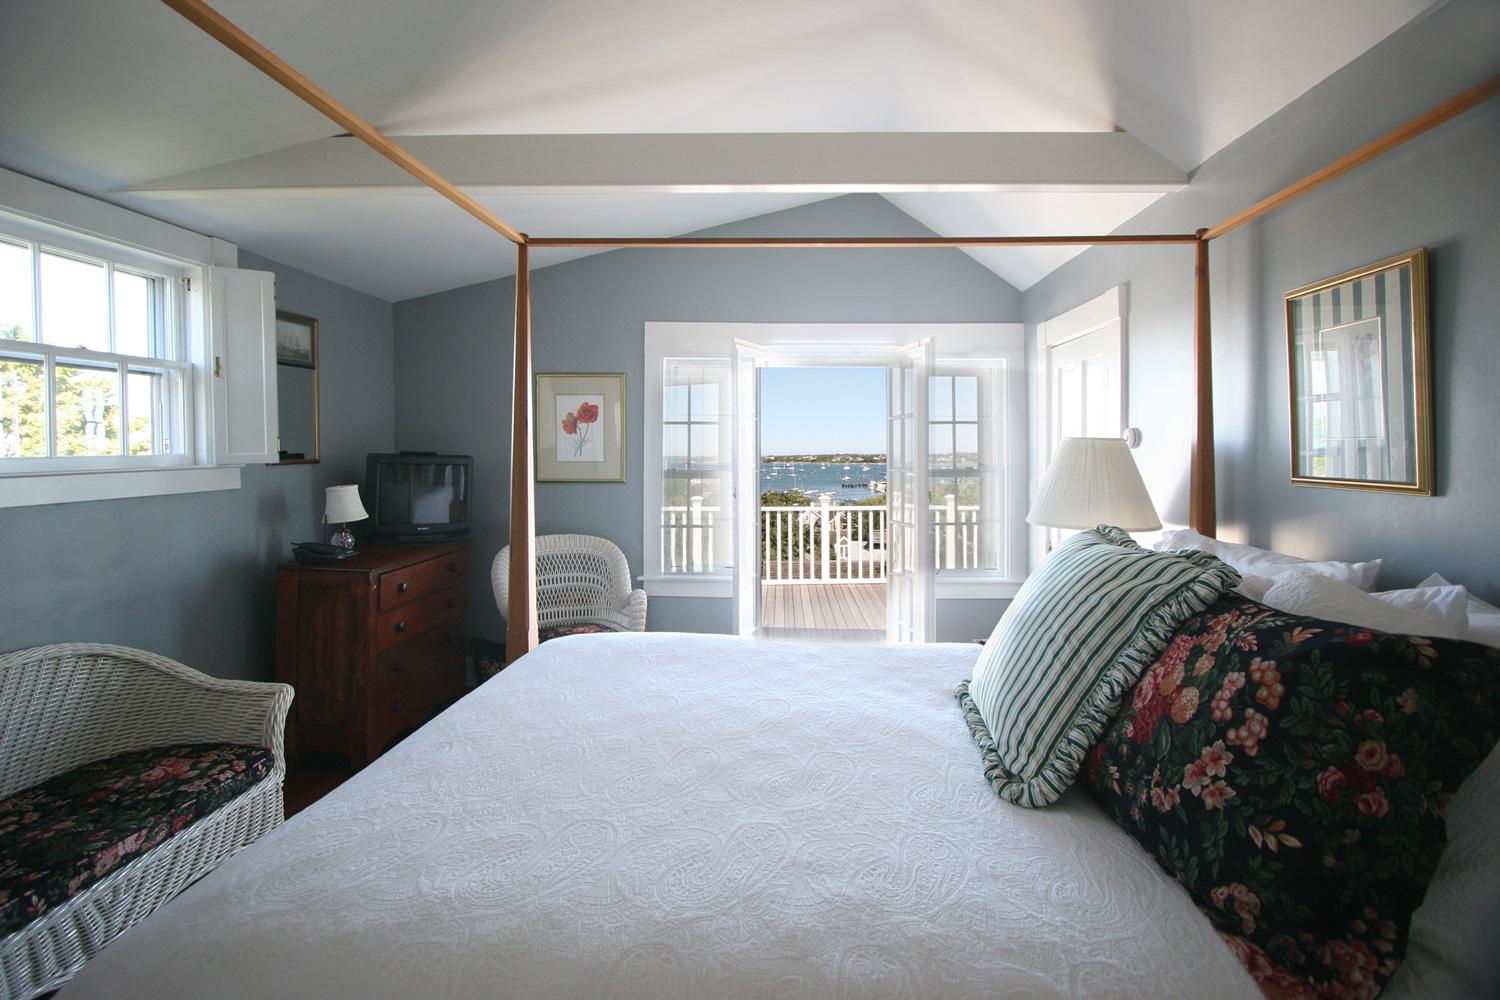 Matthew-Myrics_Design-Associates-Master-Bedroom.jpg